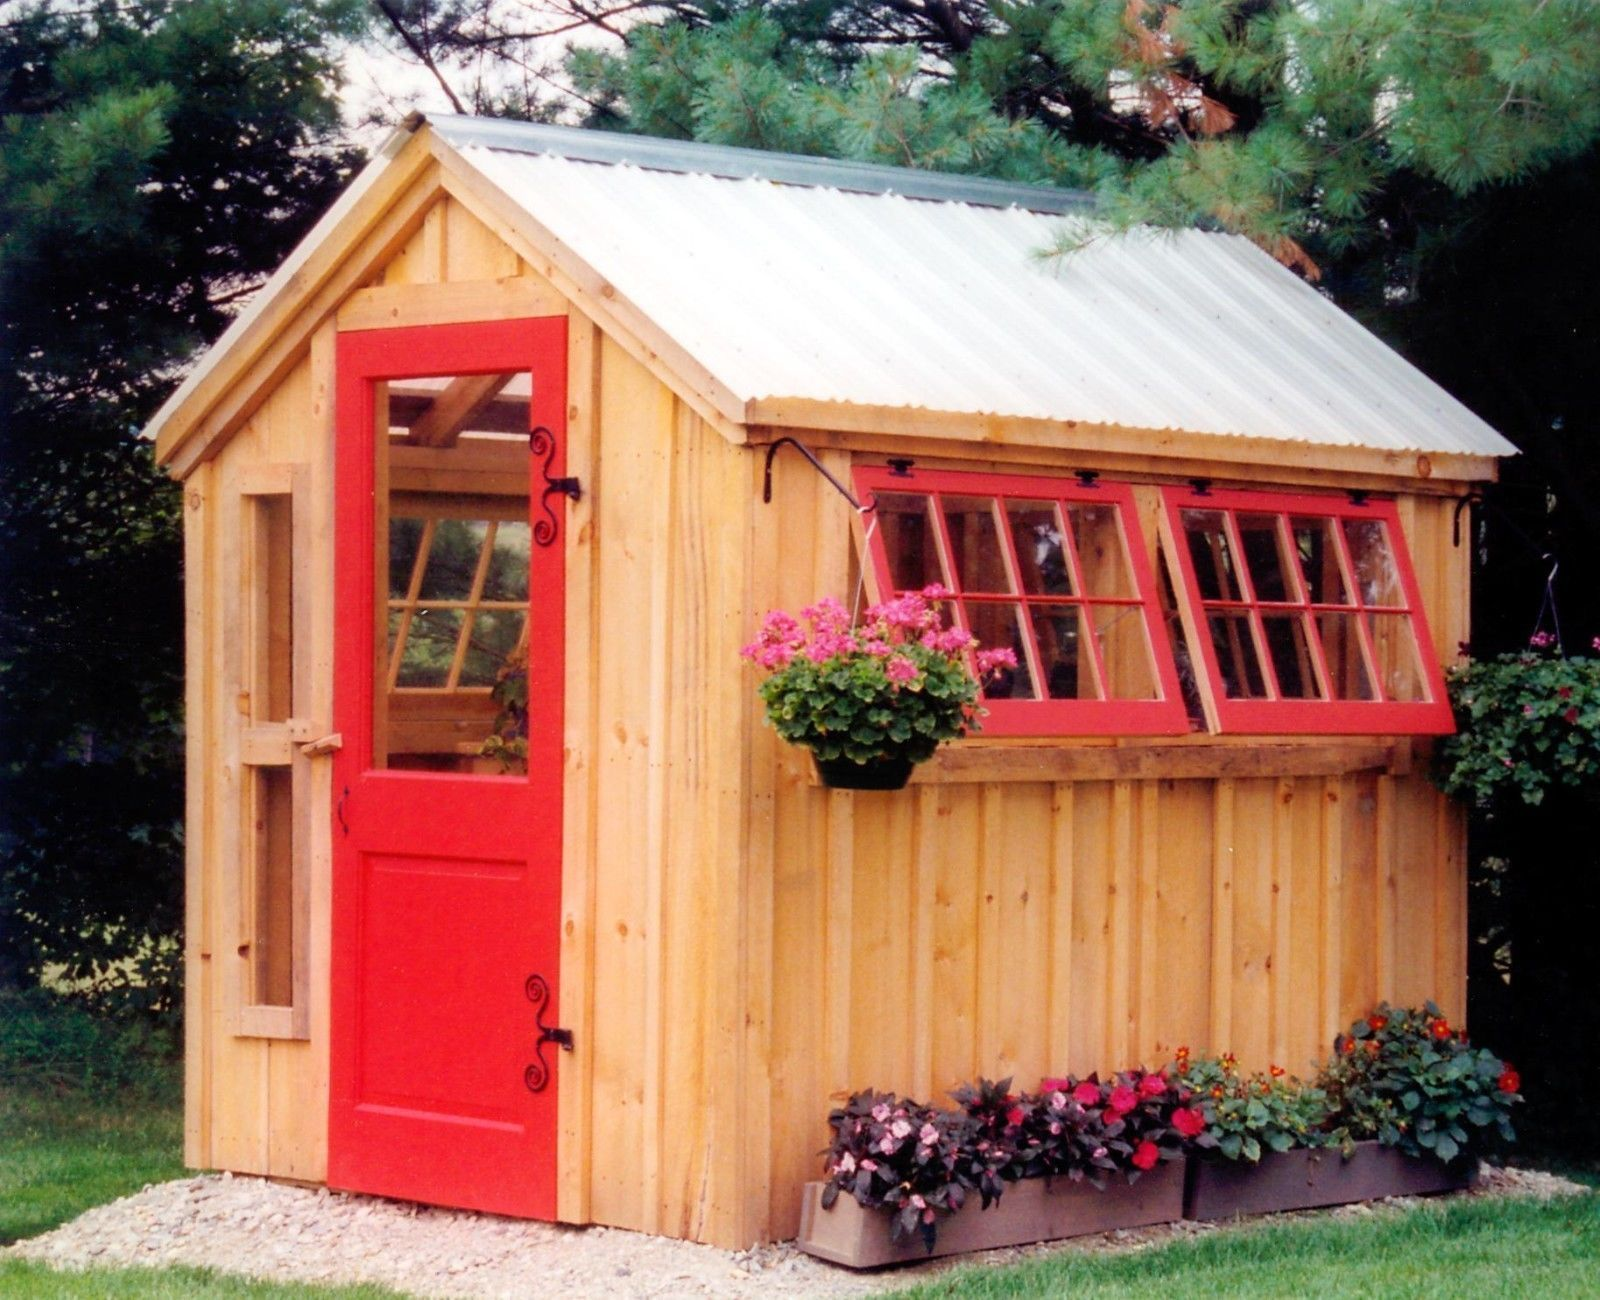 How to Build a 6x8 Shed